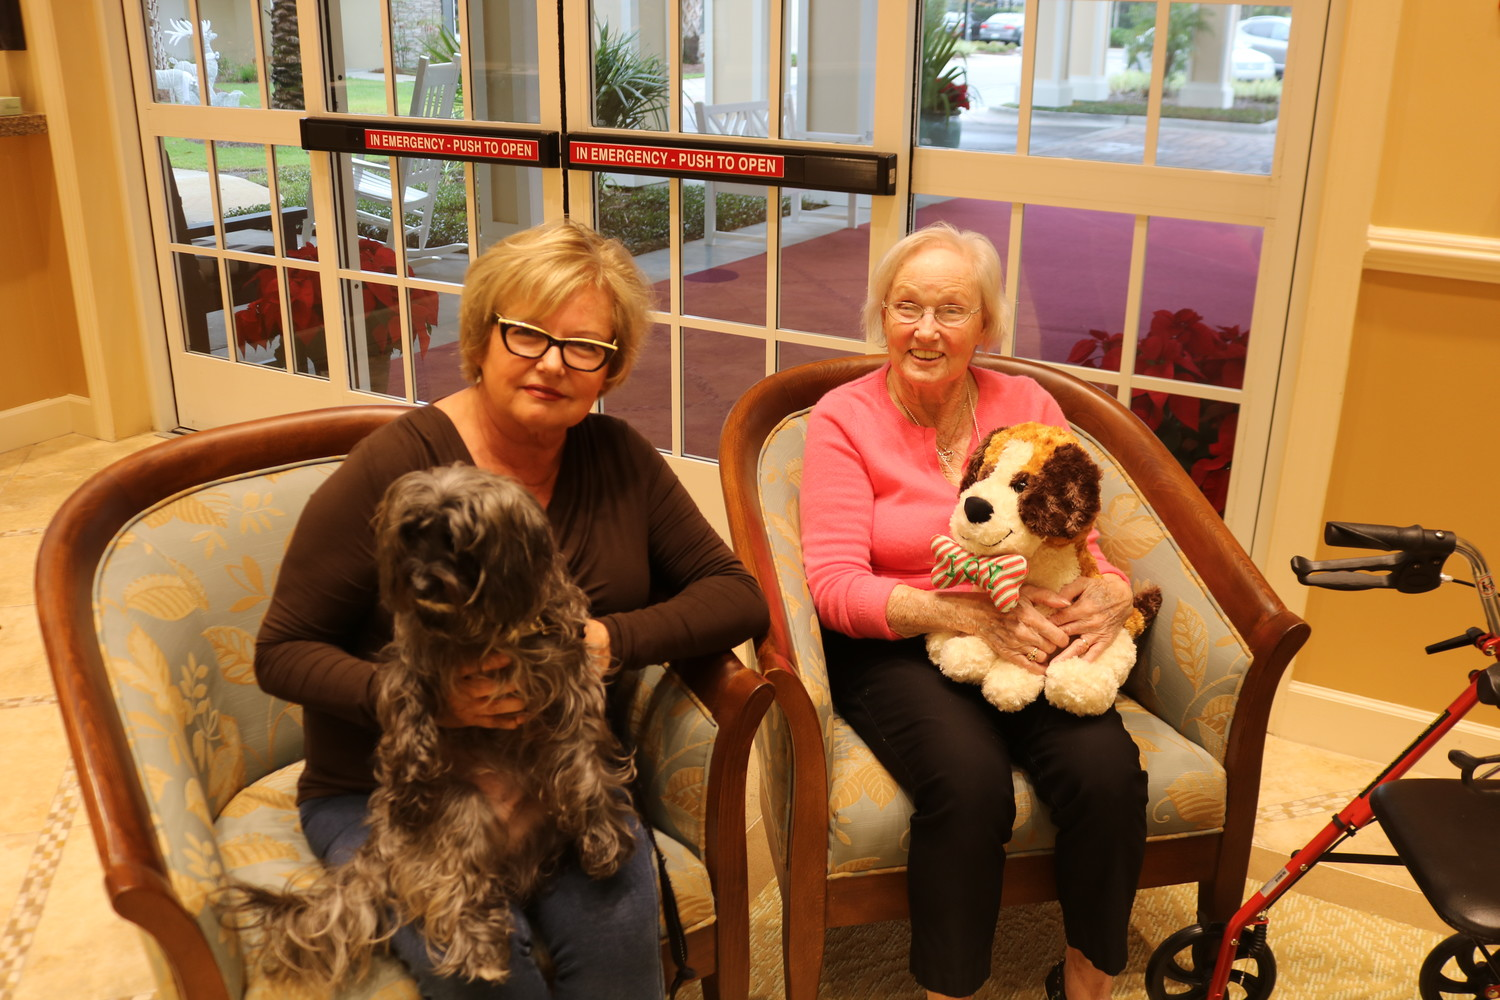 Jane Weden (left) poses for a photo with her mother, Marilyn McGuckin, and their dog Quirky at the Palms at Ponte Vedra.